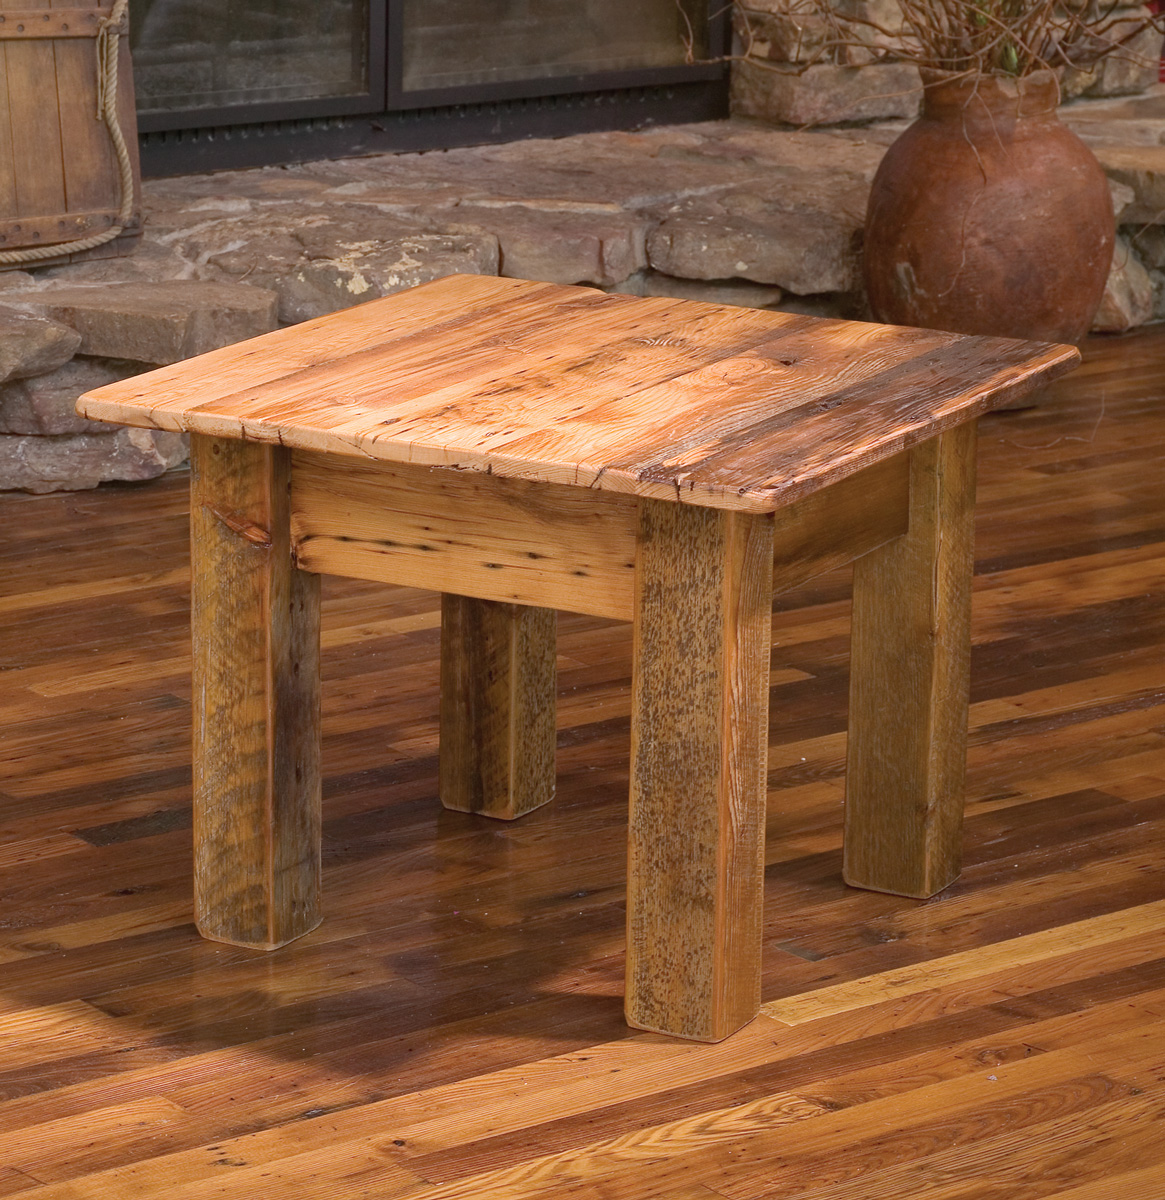 Reclaimed barn wood furniture at the galleria Reclaimed woods